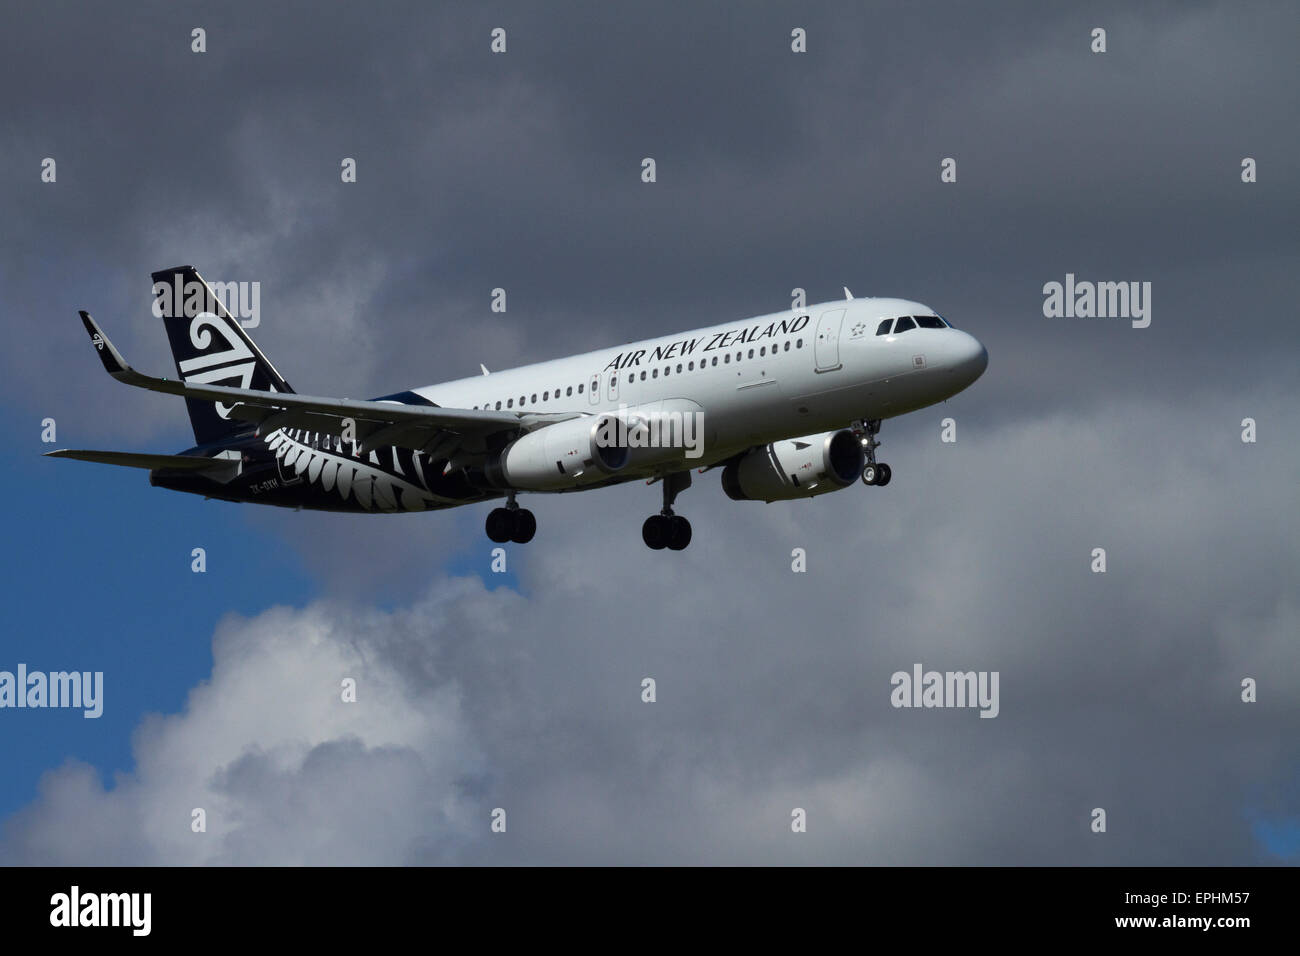 Air New Zealand A320 landing at Auckland Airport, Auckland, North Island, New Zealand - Stock Image